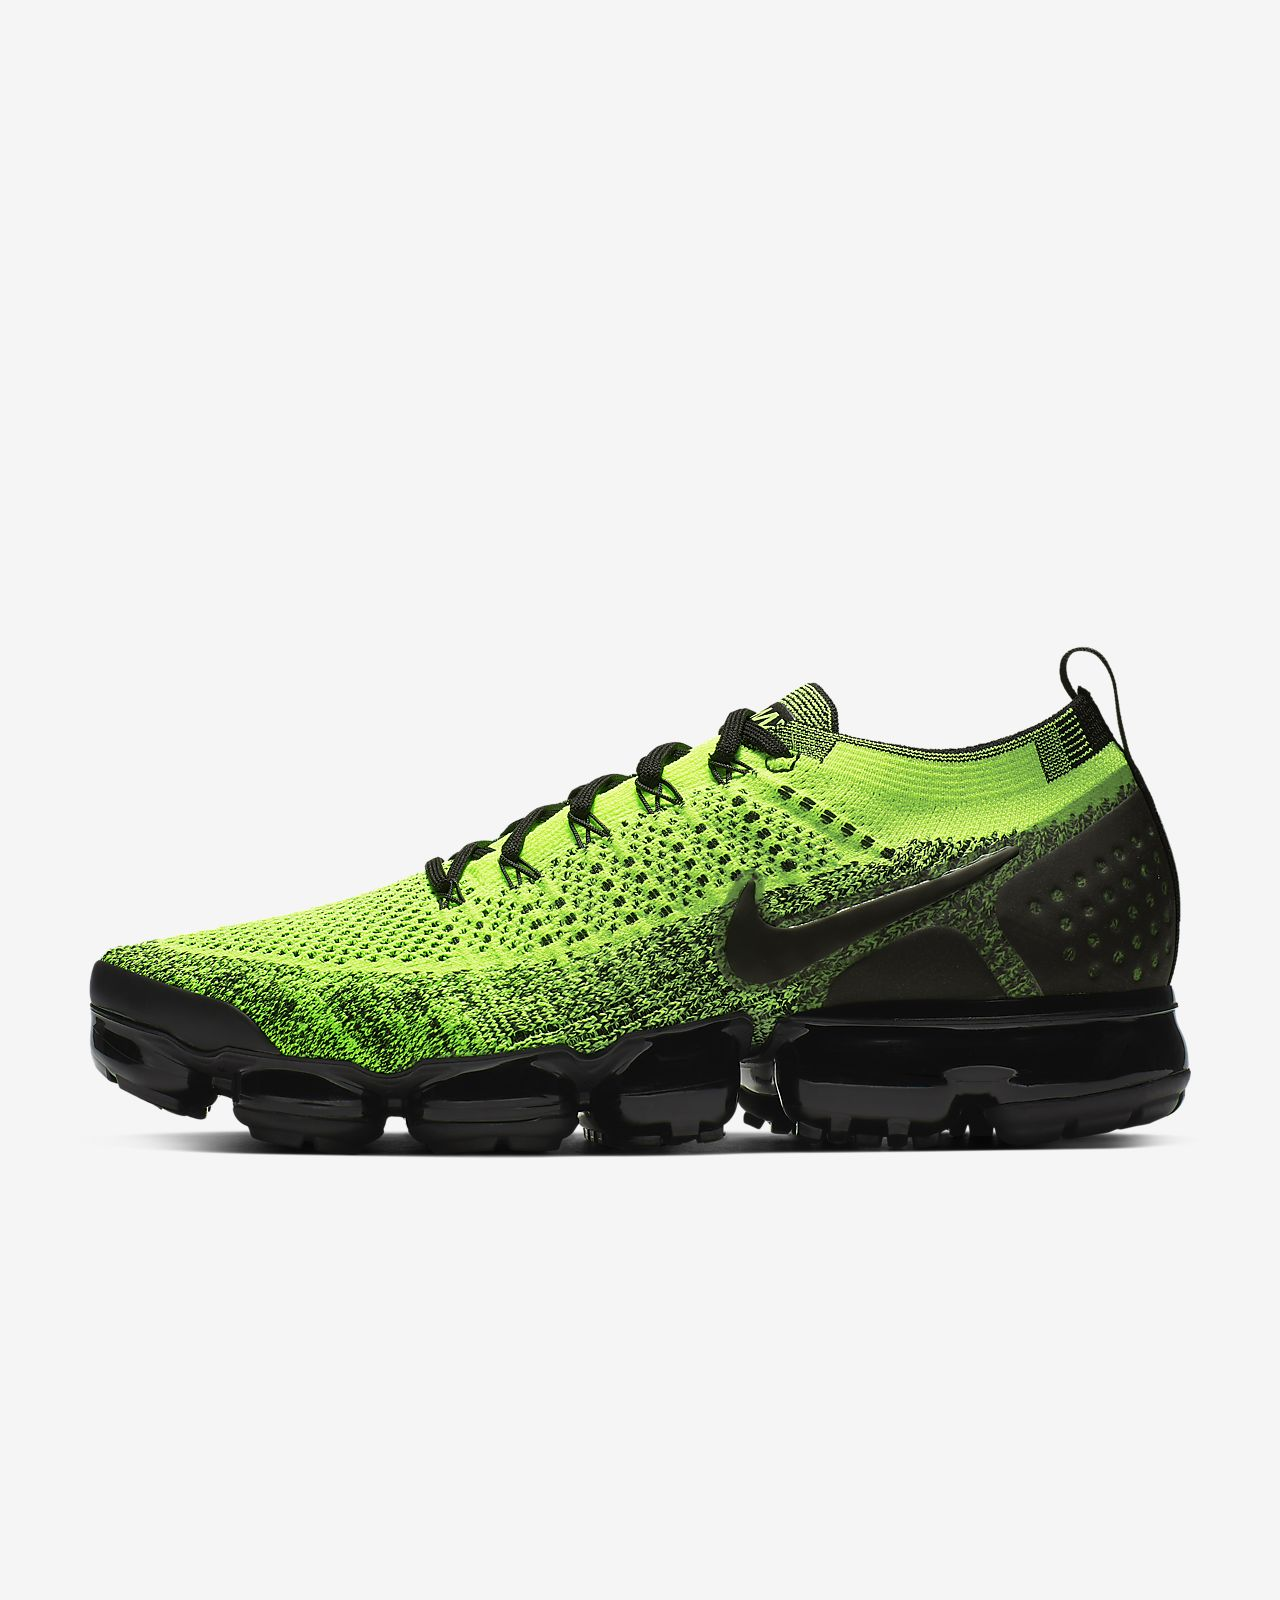 reputable site bae9c 050e5 Shoe. Nike Air VaporMax Flyknit 2